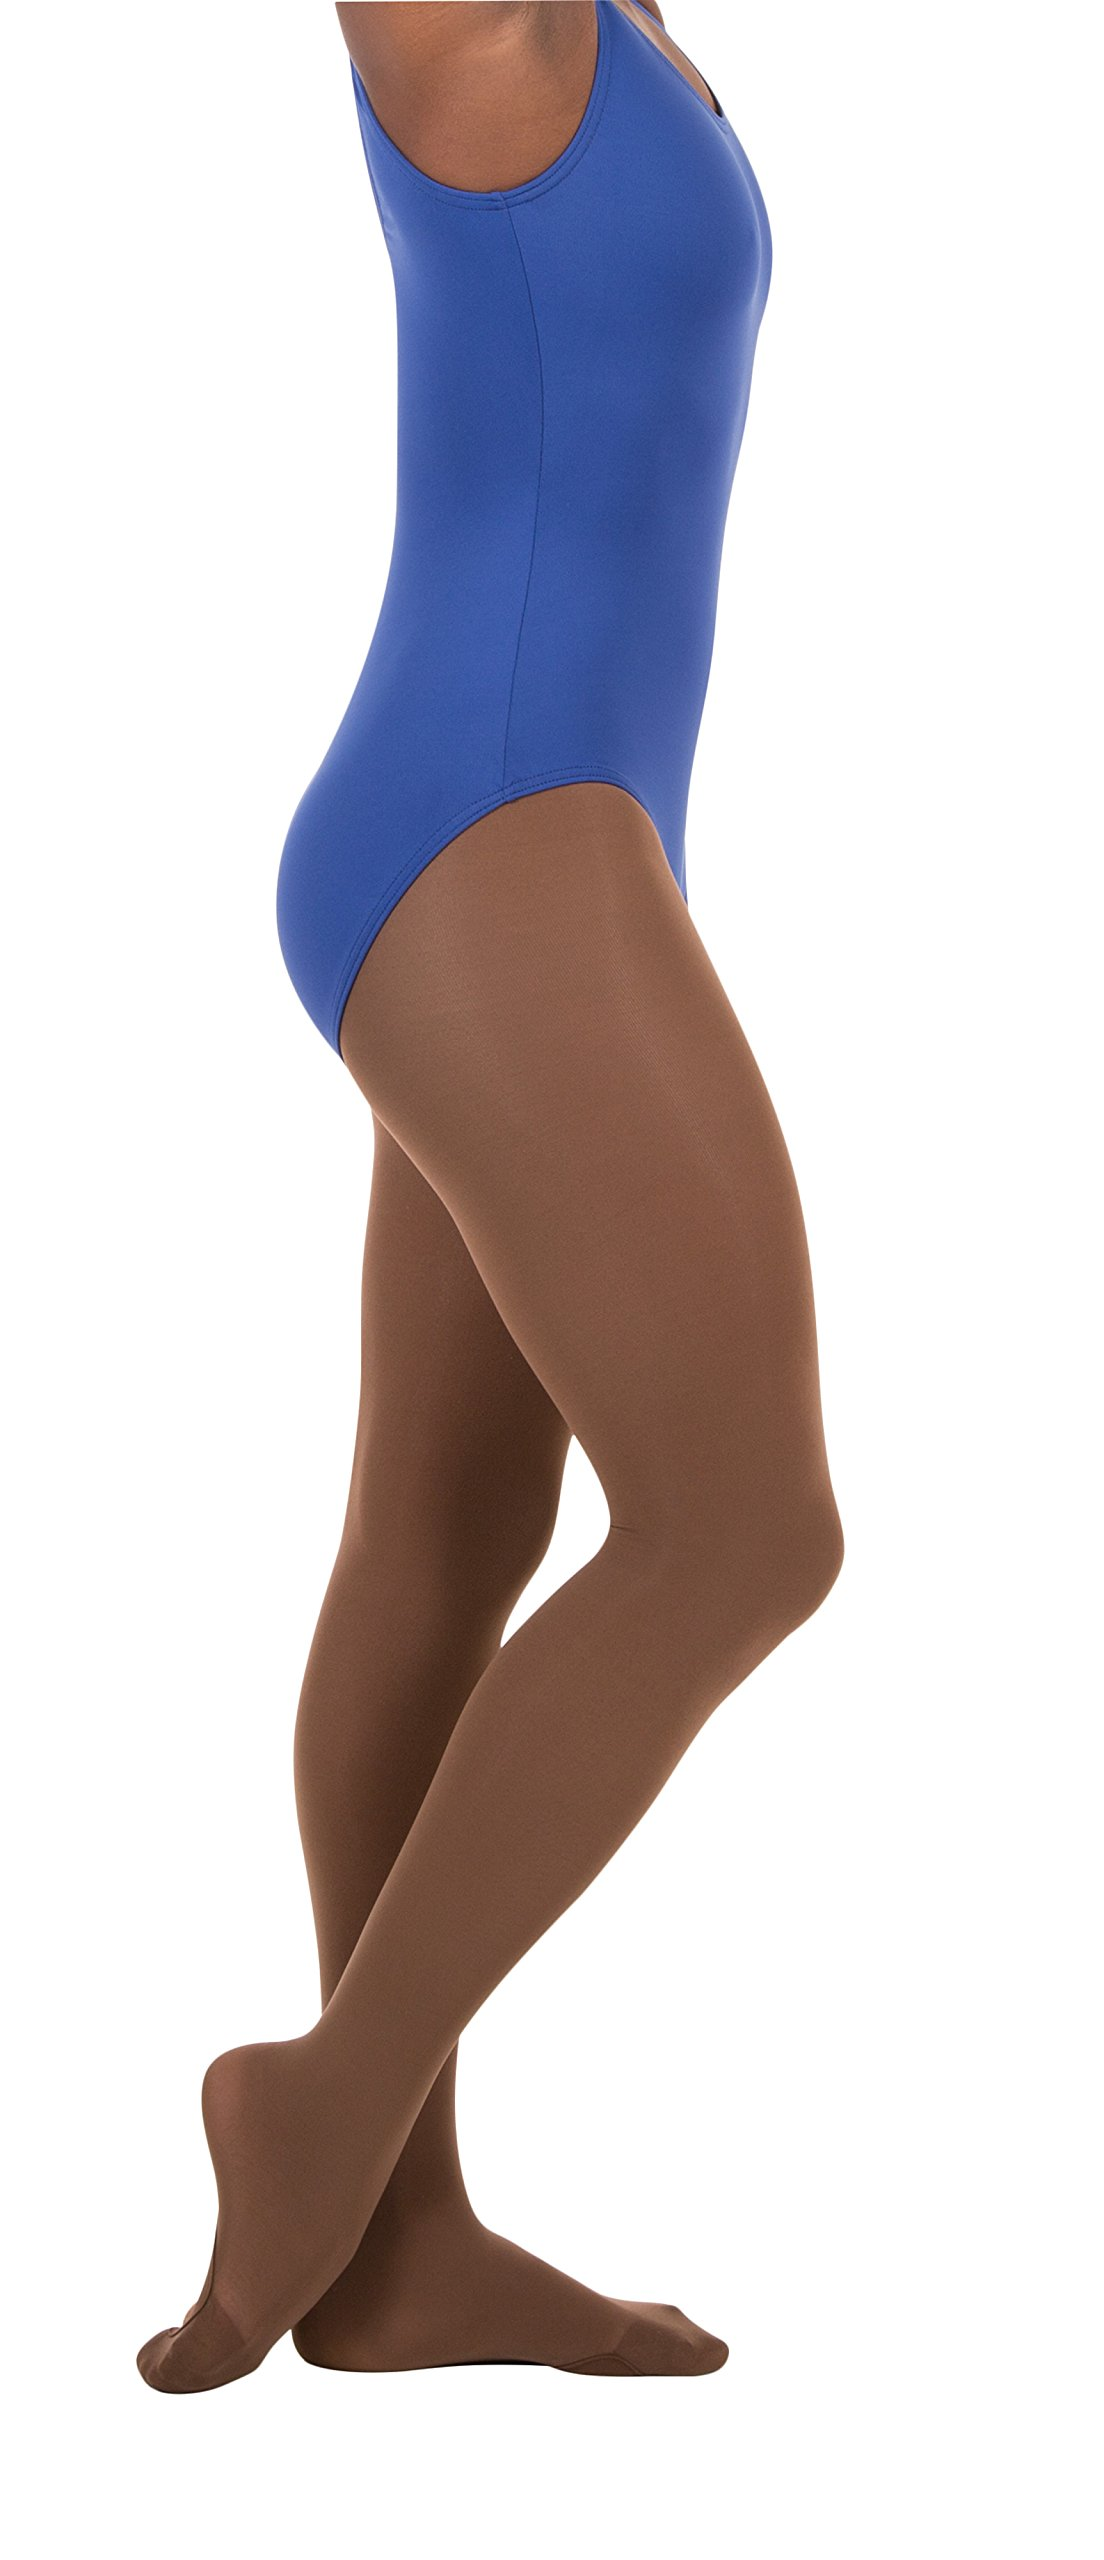 Body Wrappers Women's Total Strech Convertible Tights - A31, Mocha, Large/XL by Body Wrappers